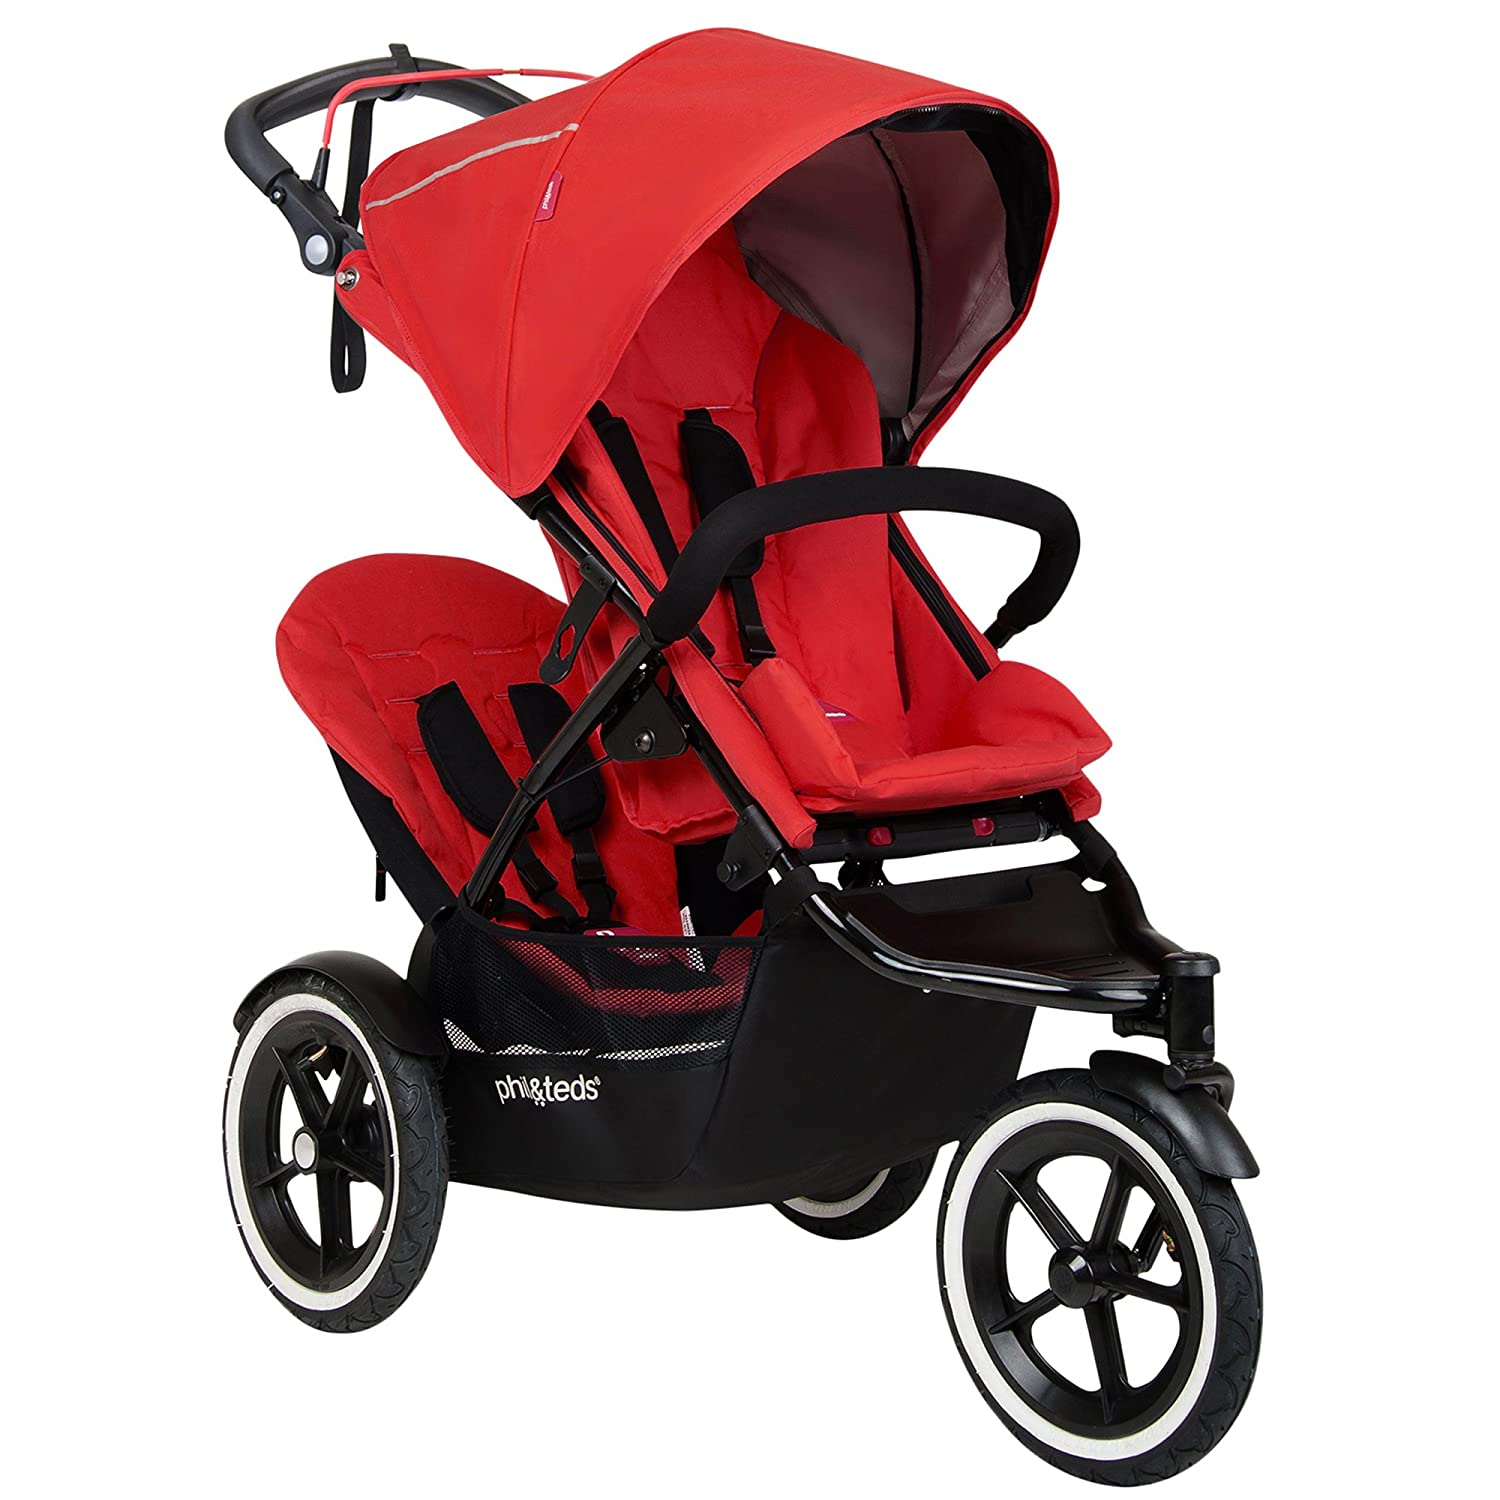 Phil Teds Sport All Terrain Inline Stroller With Double Kit Black Auto Stop Safety Brake All Terrain Air